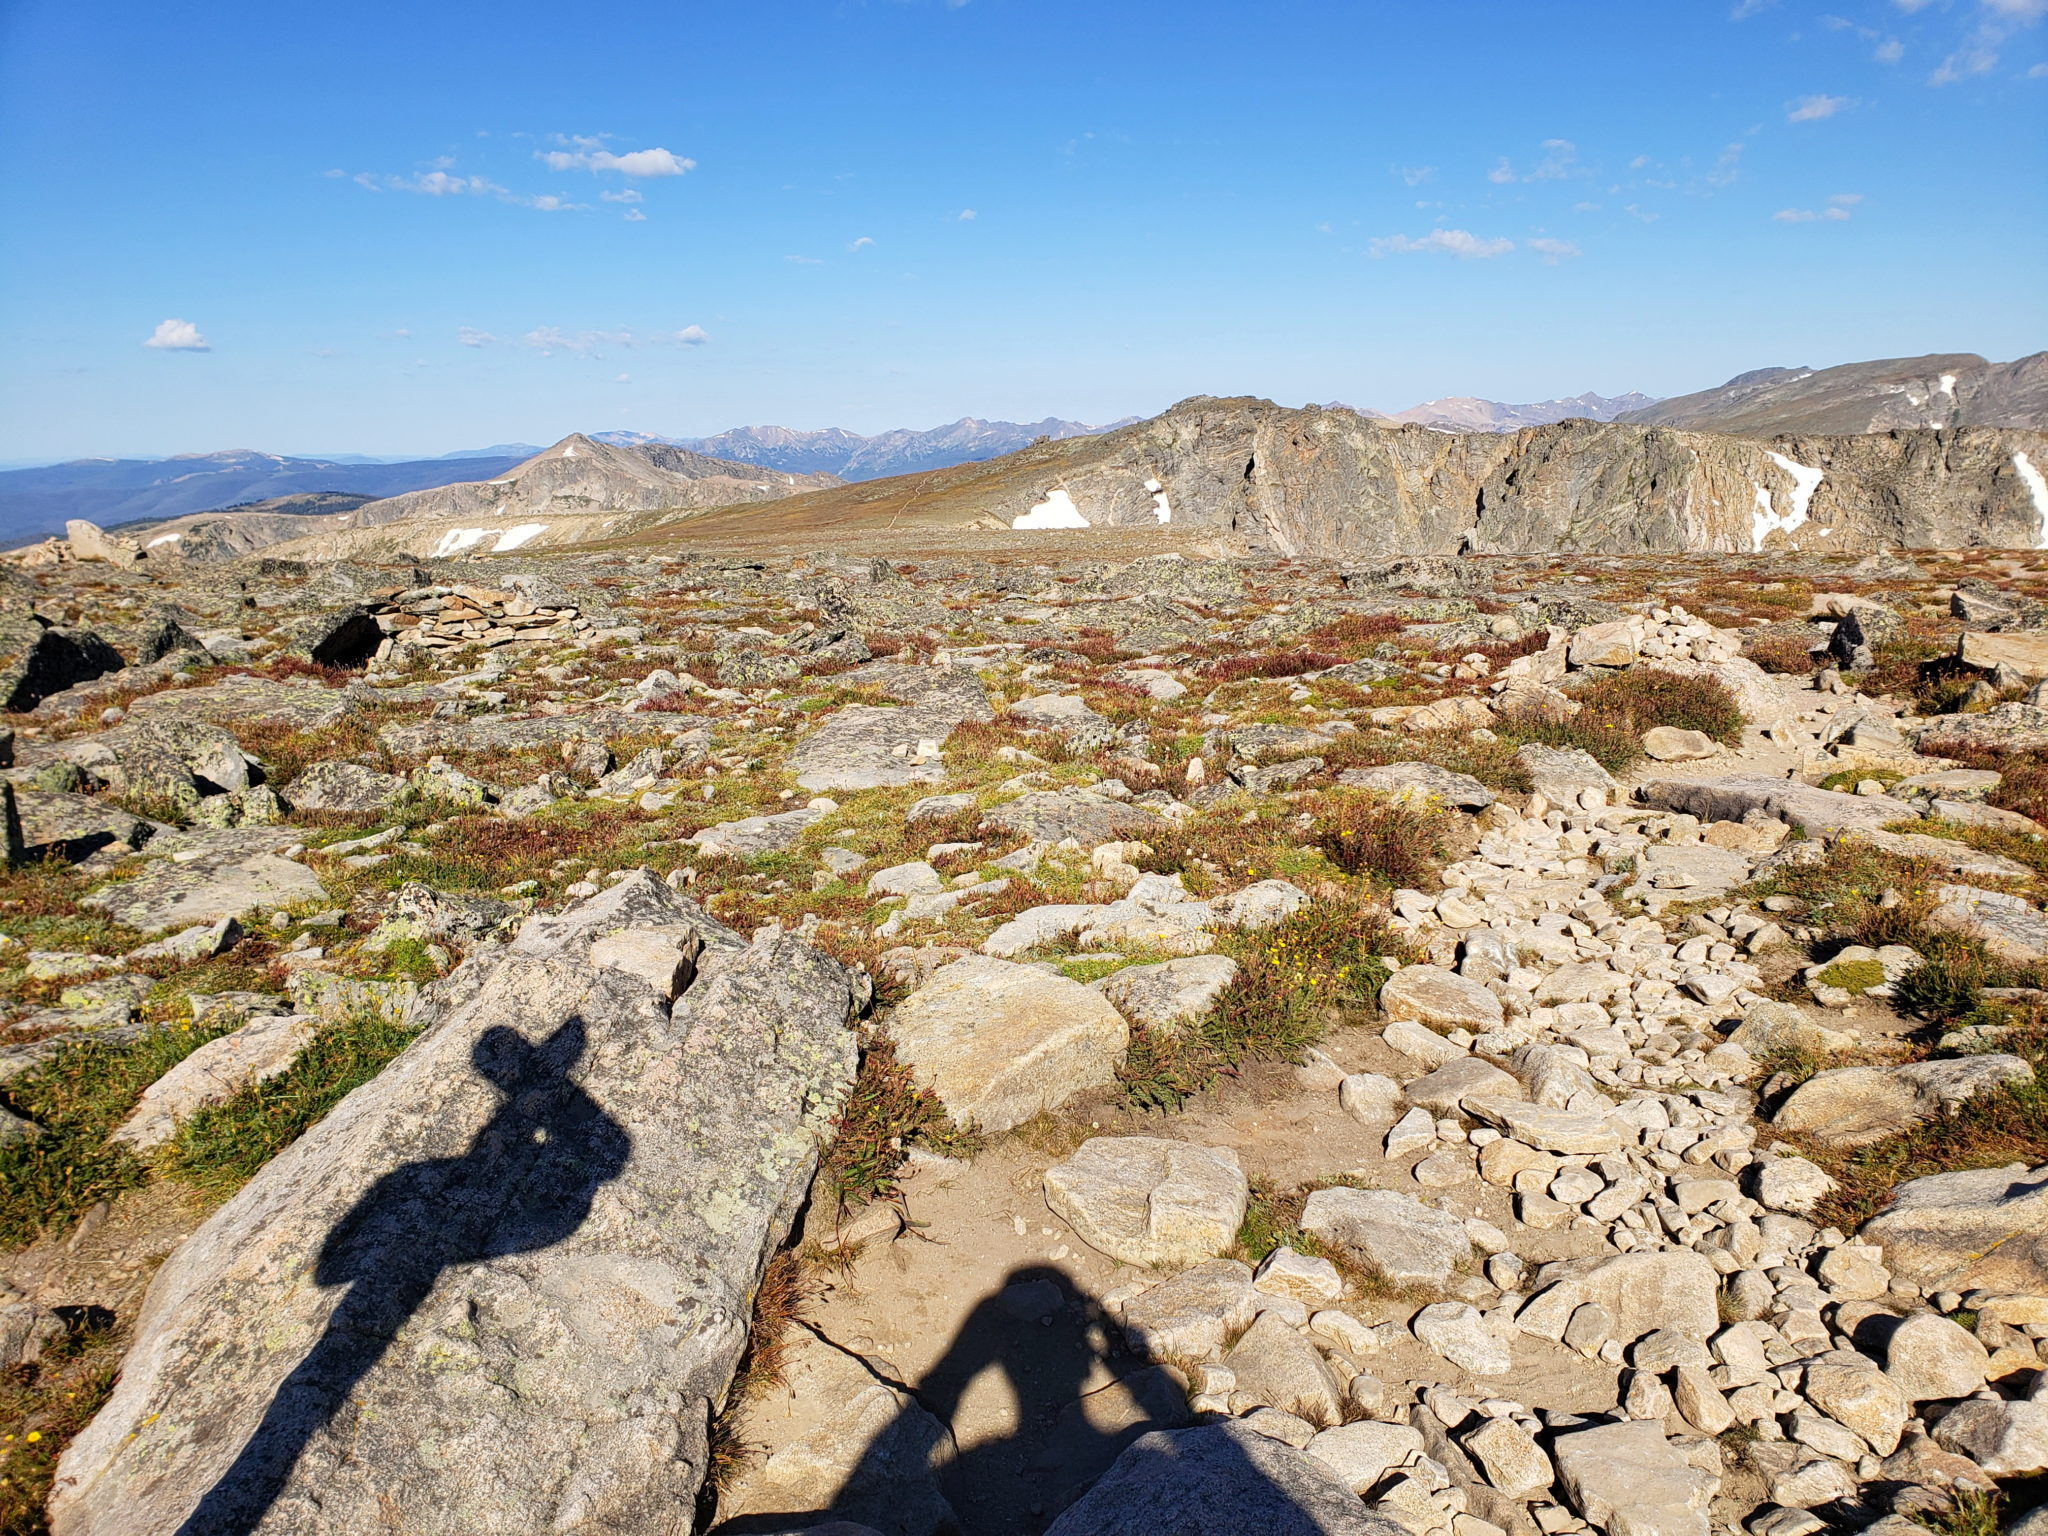 View from the summit of Flattop Mountain (12,324